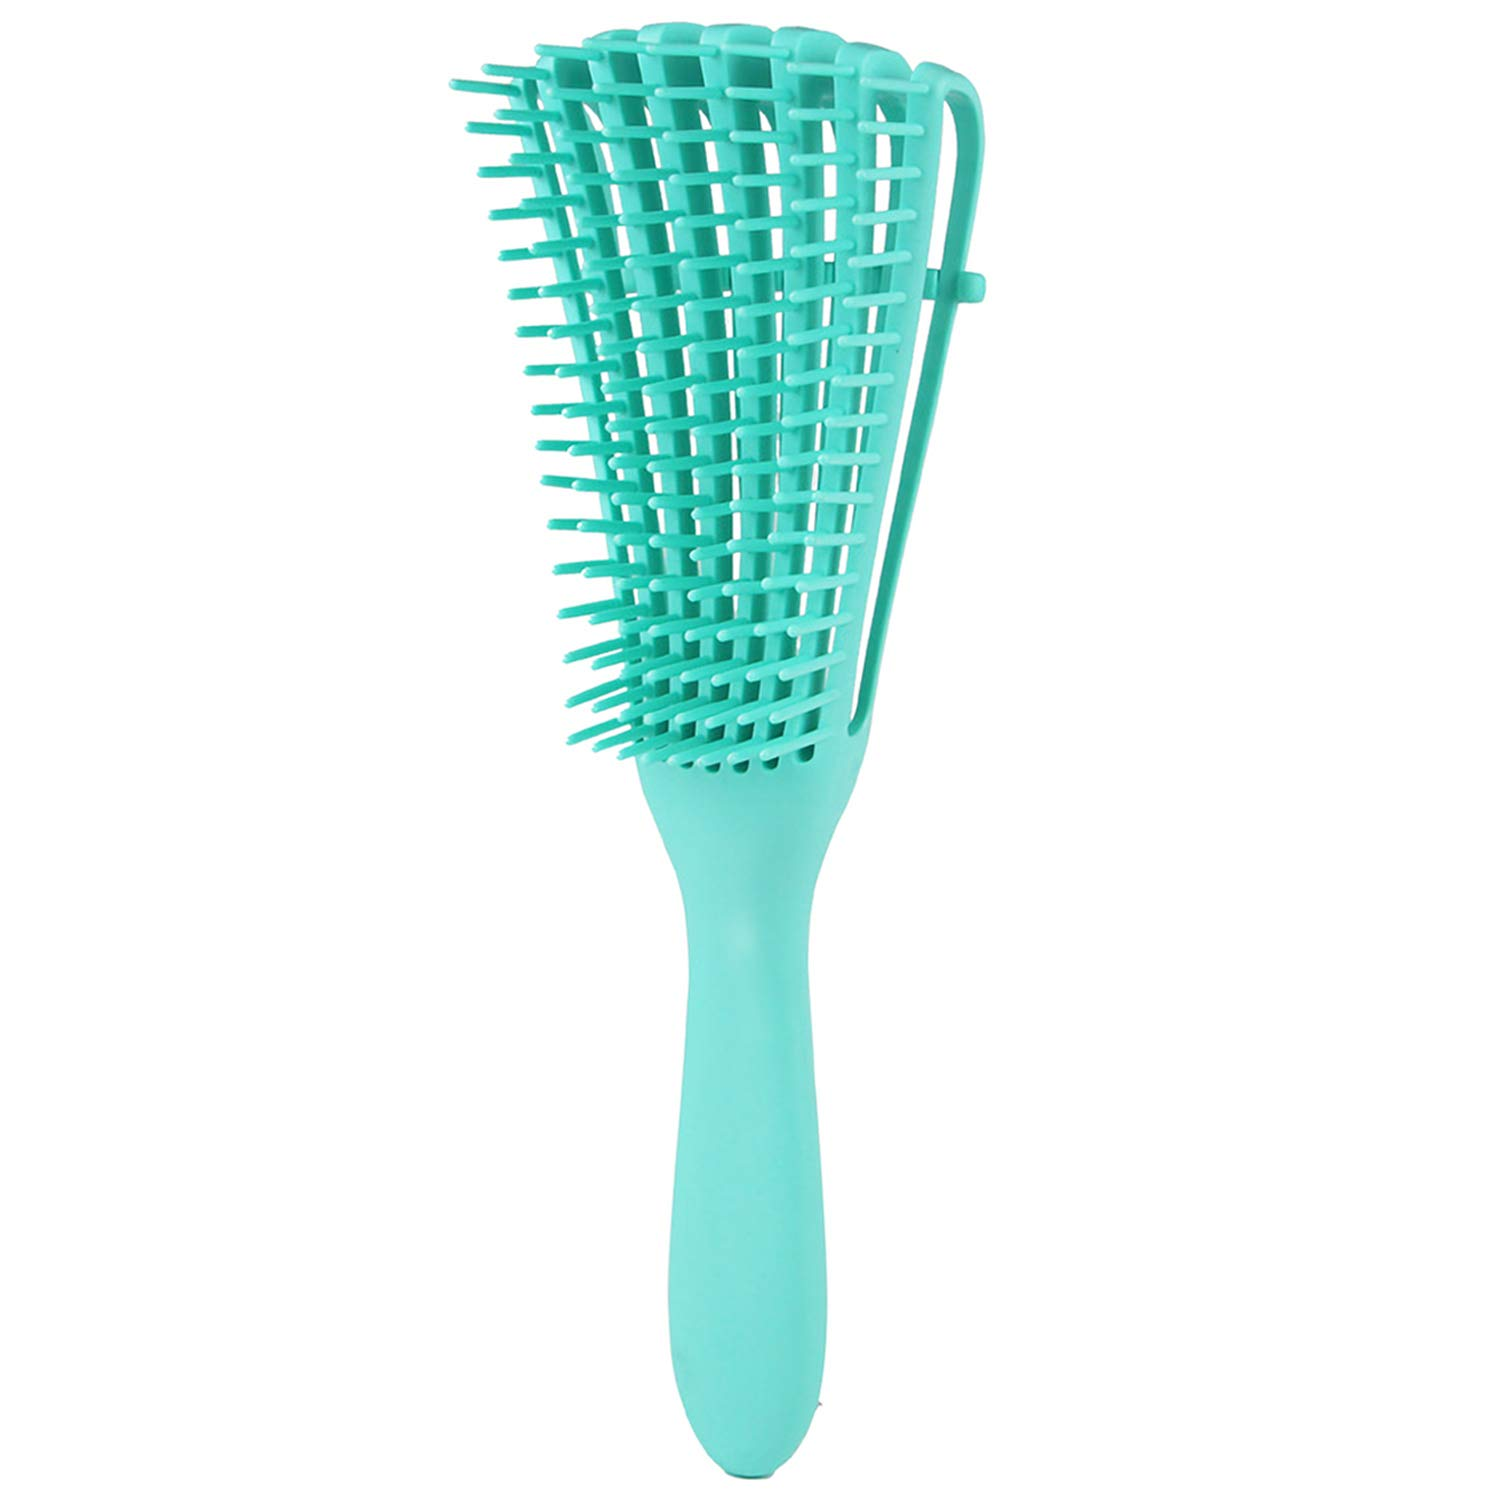 Luxtrip Detangling Brush for Curly Hair,Detangling Brush for Natural Hair-Detangler,for Afro America 3a to 4c Kinky Wavy, Curly, Coily Hair,for Wet/Dry/Long Thick Curly Hair (green)